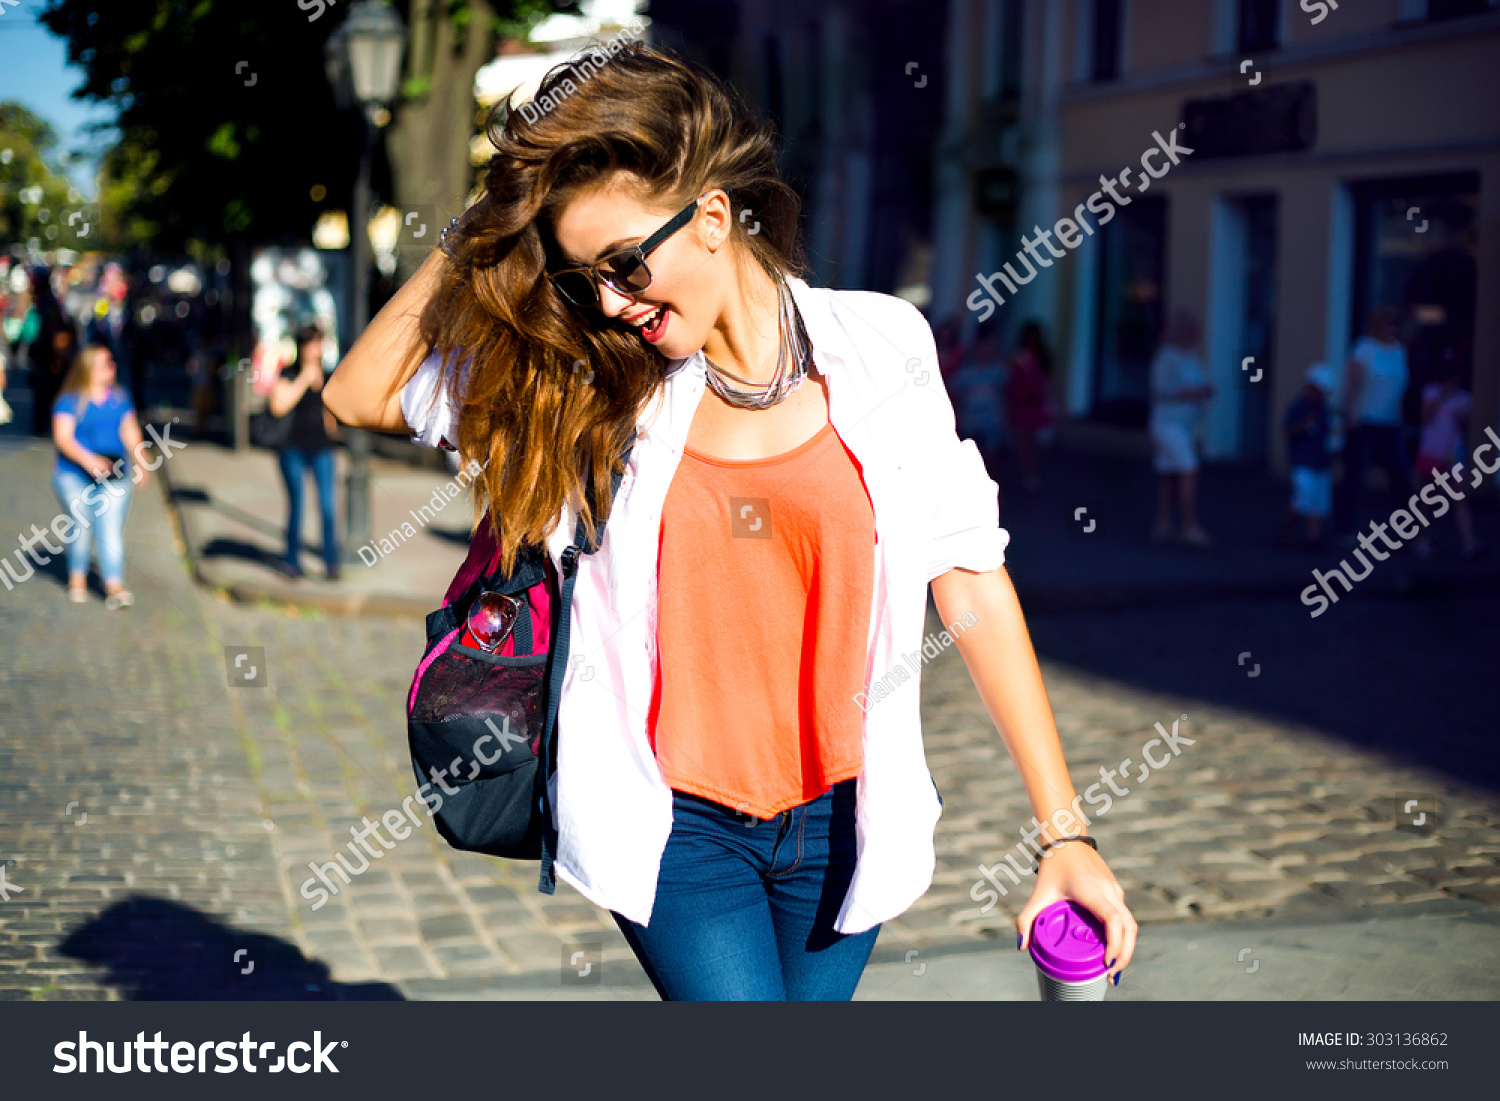 Summer Sunny Lifestyle Fashion Portrait Young Stock Photo 303136862 Shutterstock